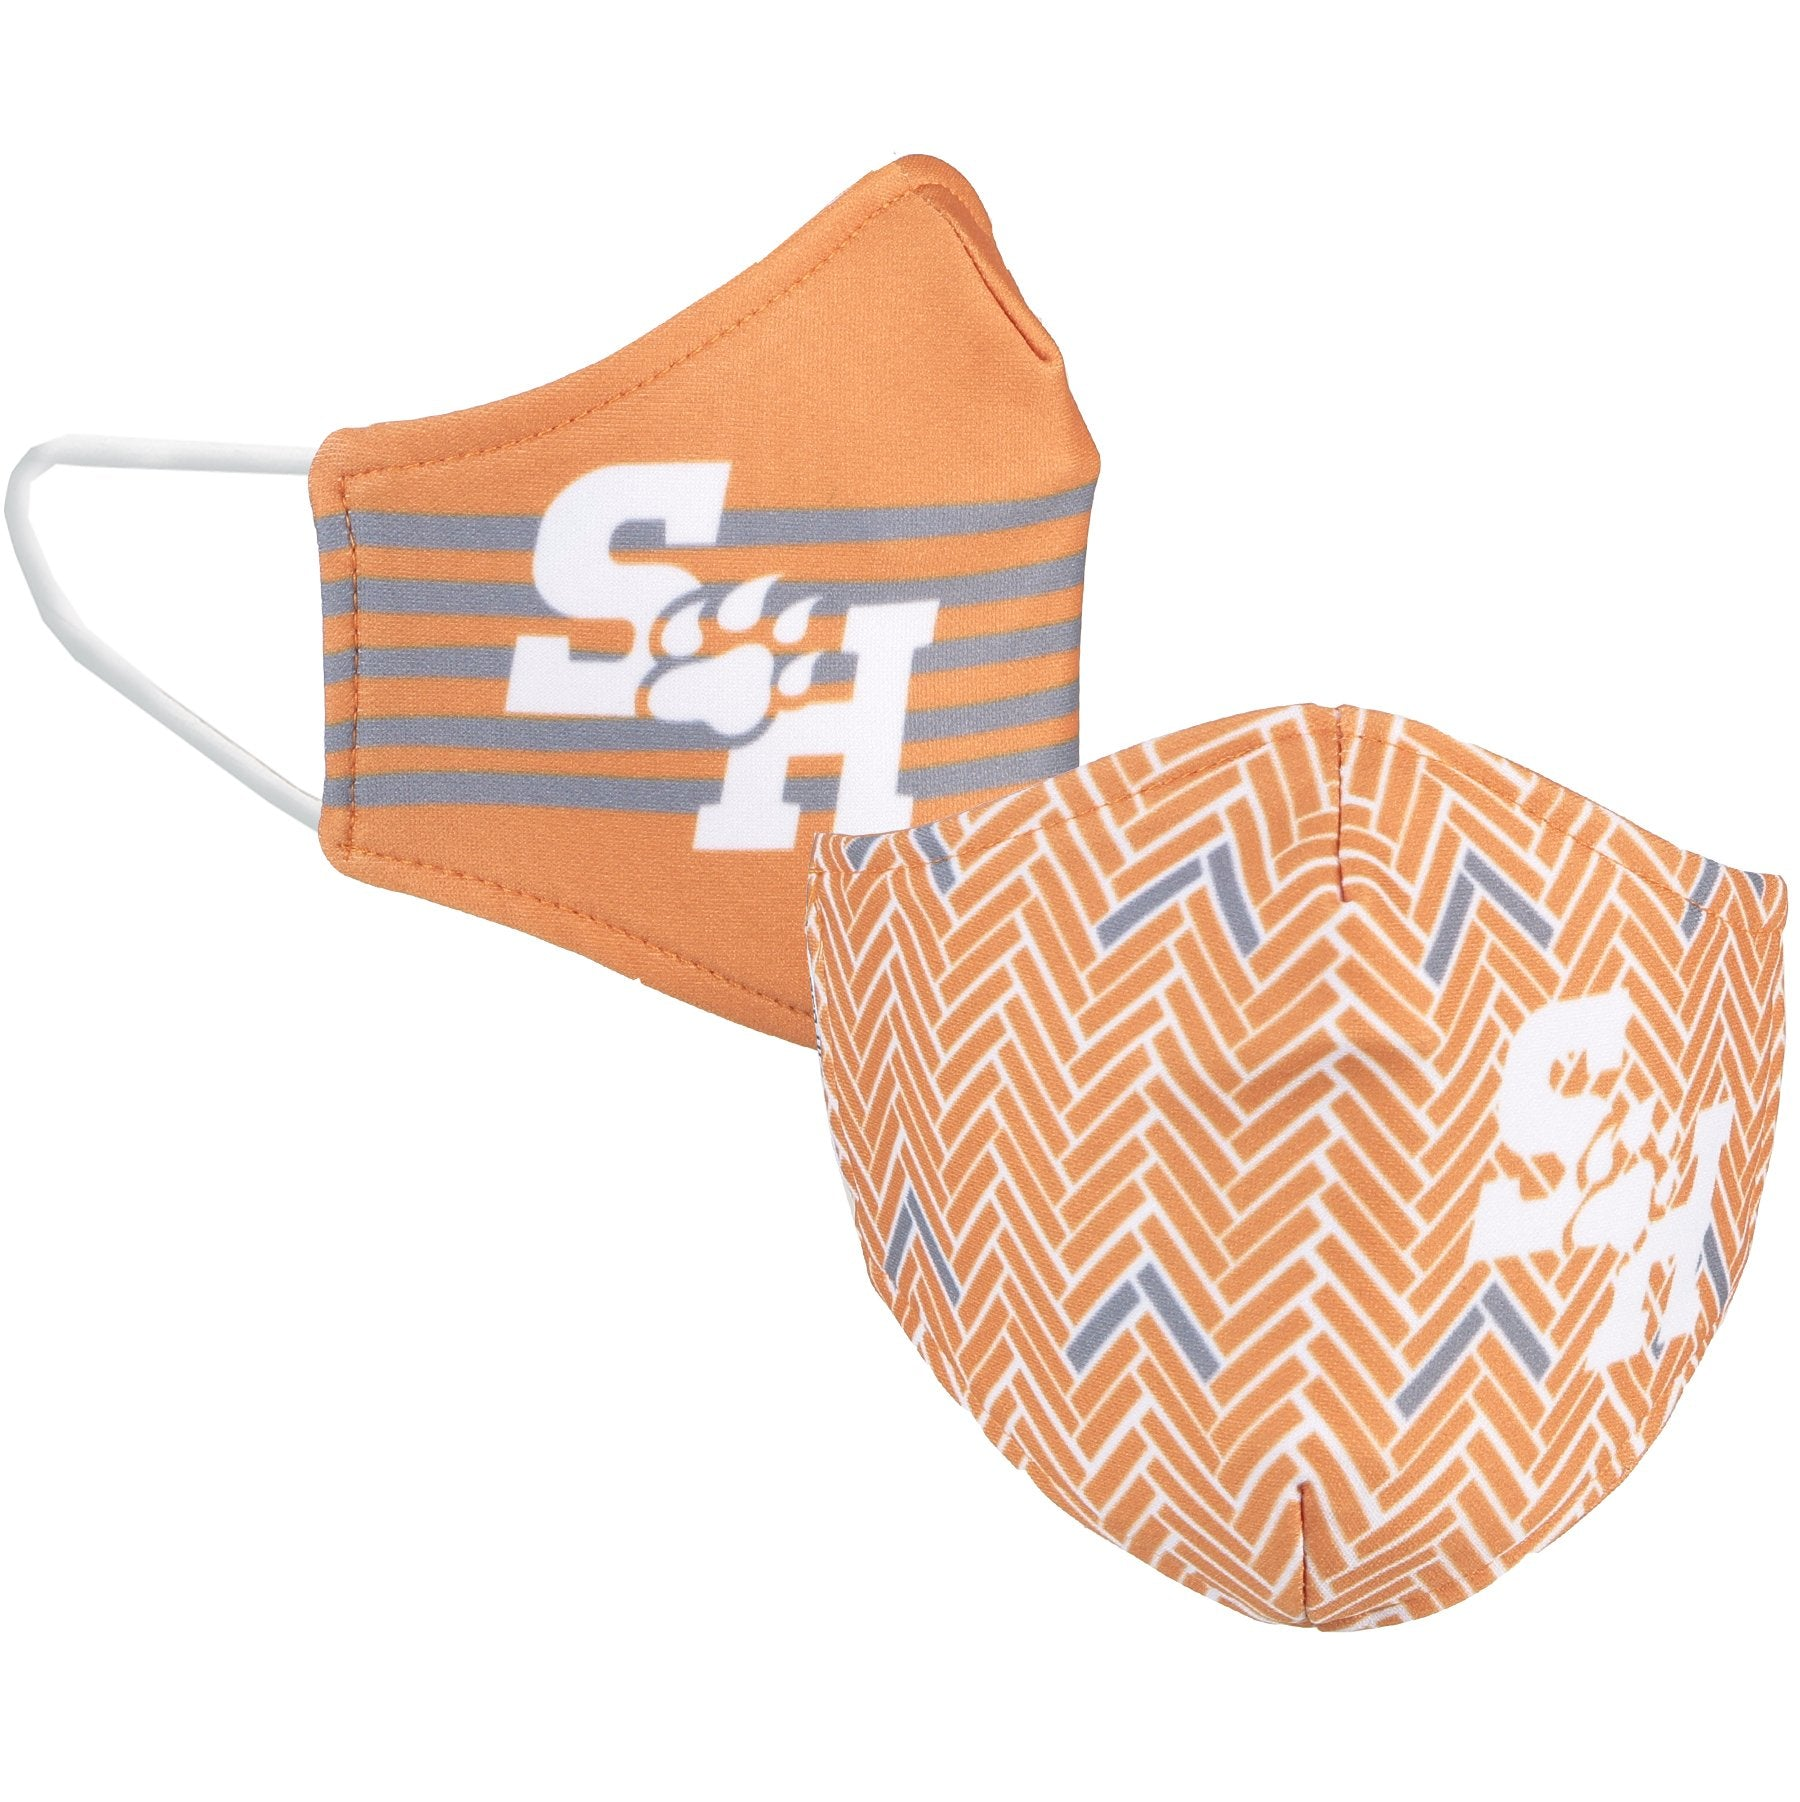 Sam Houston State University SHSU Licensed Collegiate Face Mask